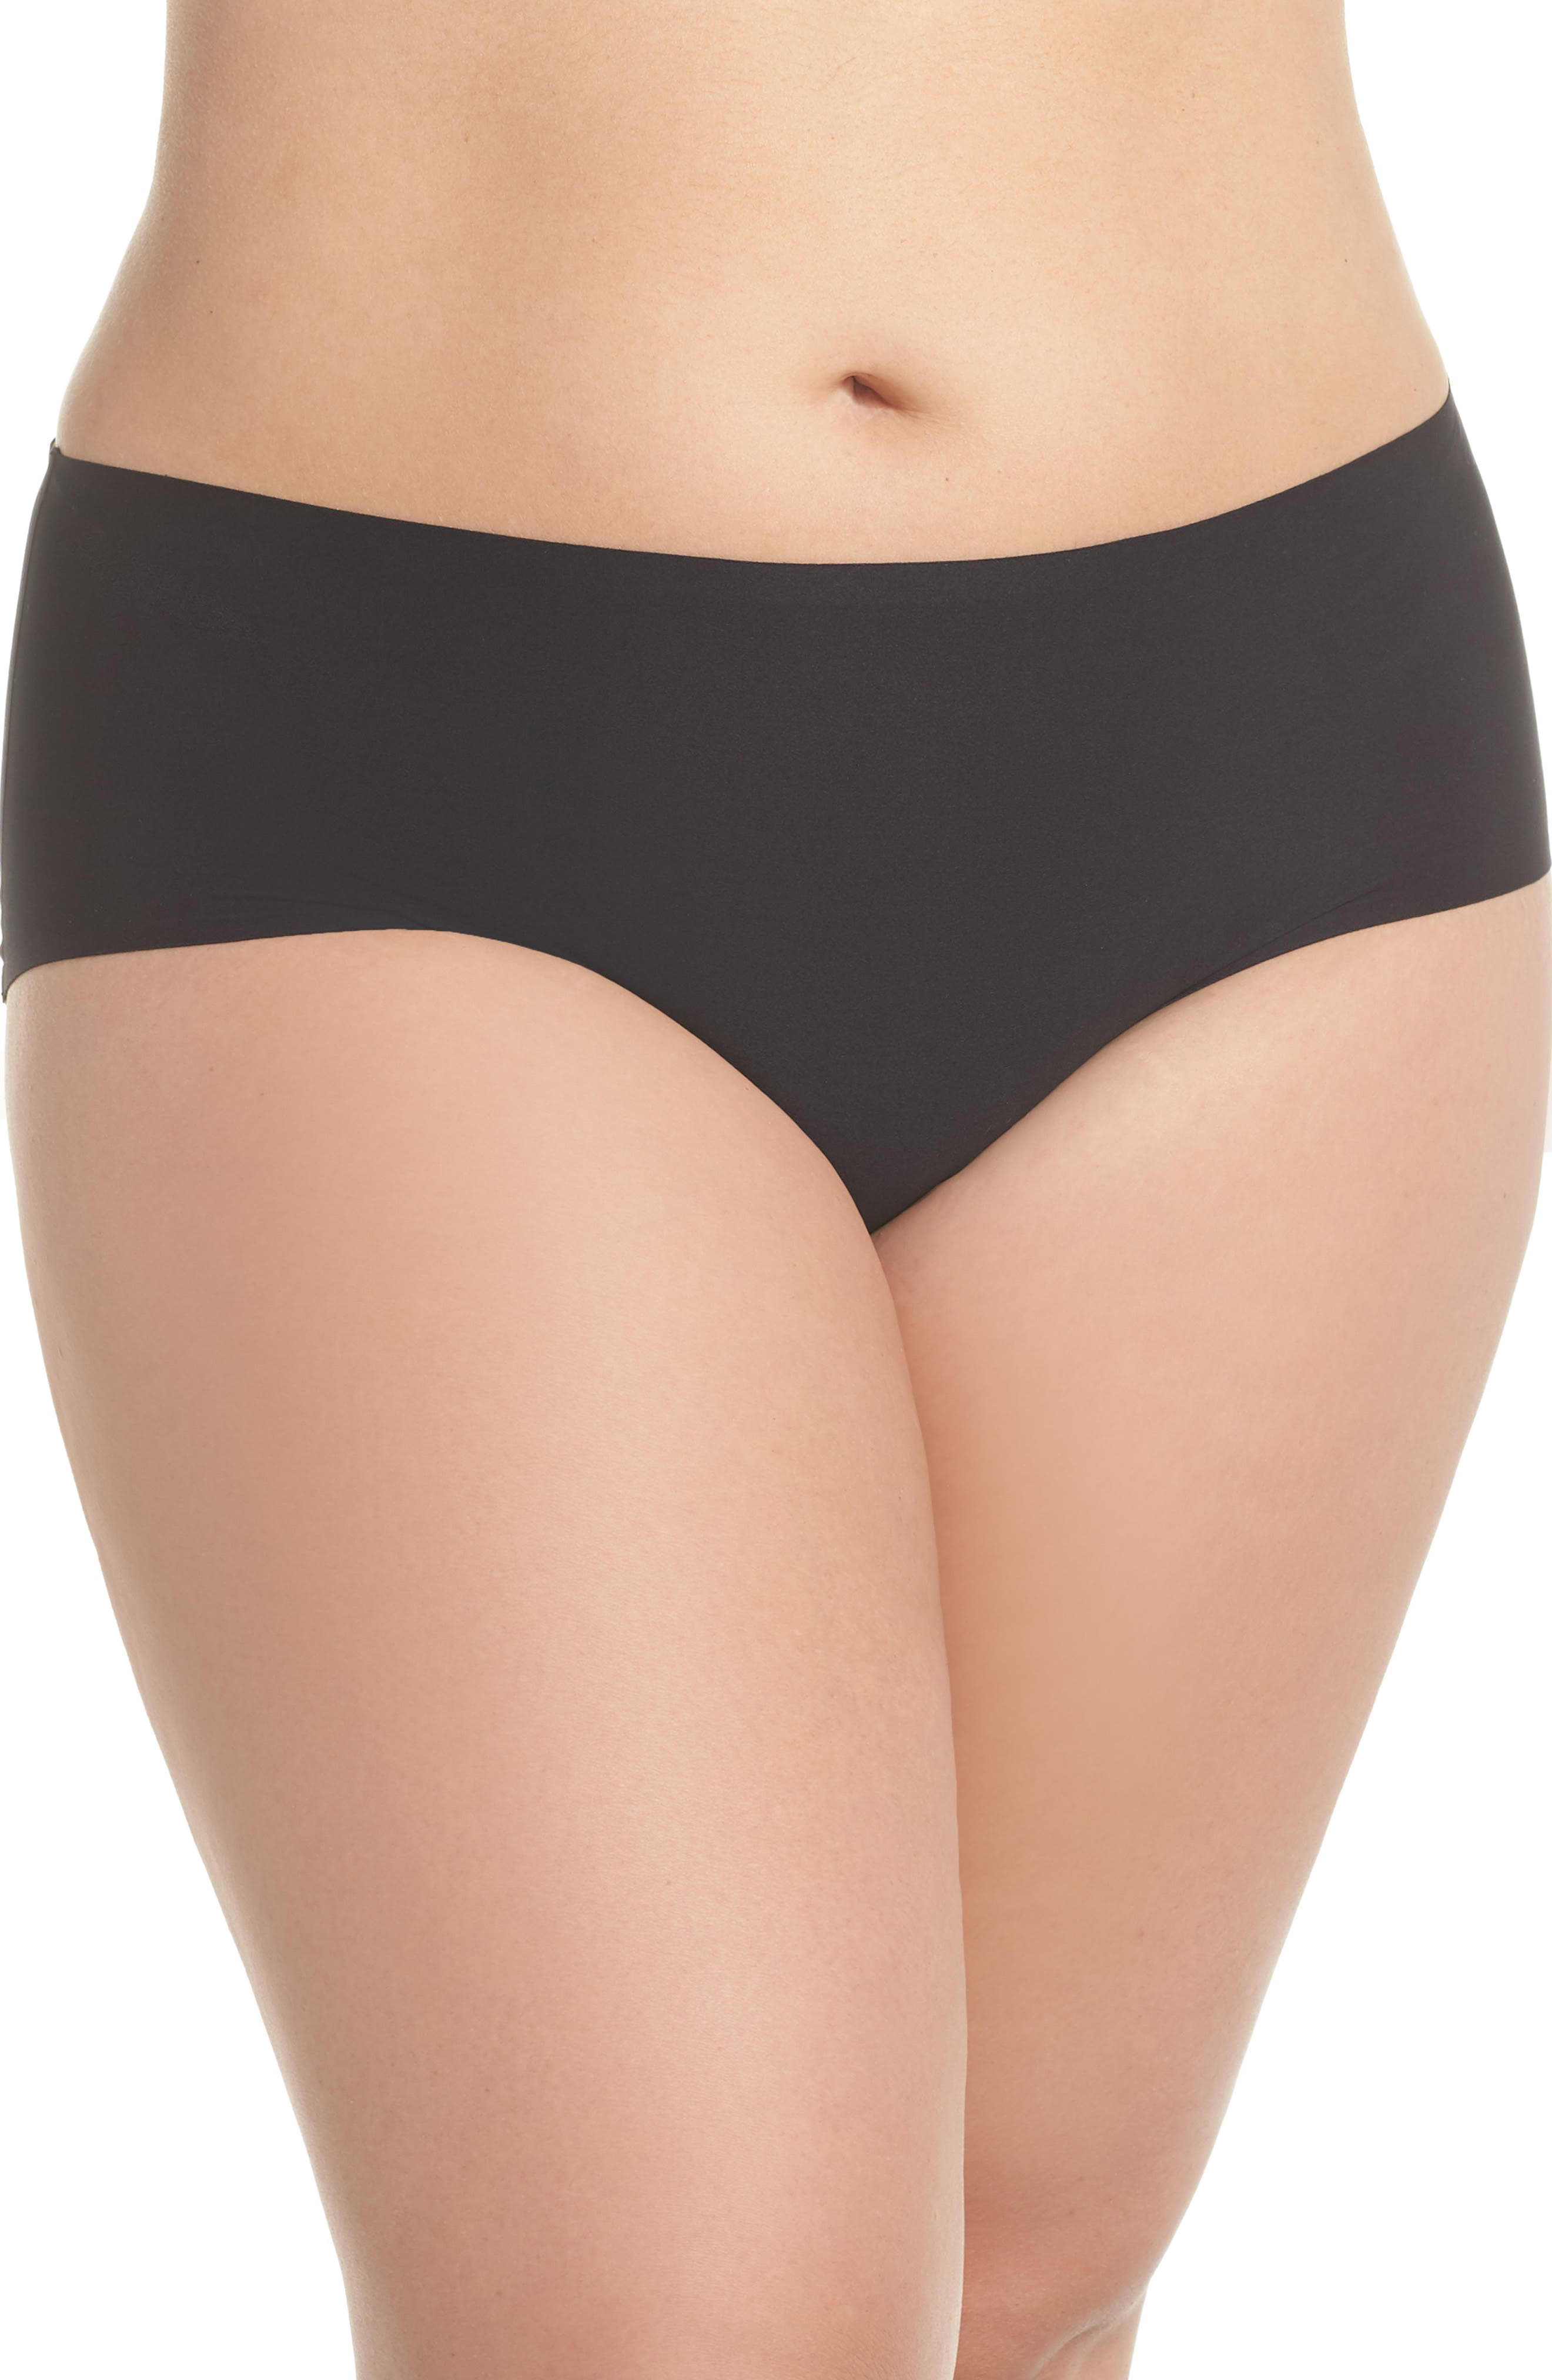 Soft Stretch Seamless Hipster Panties,                             Main thumbnail 1, color,                             BLACK